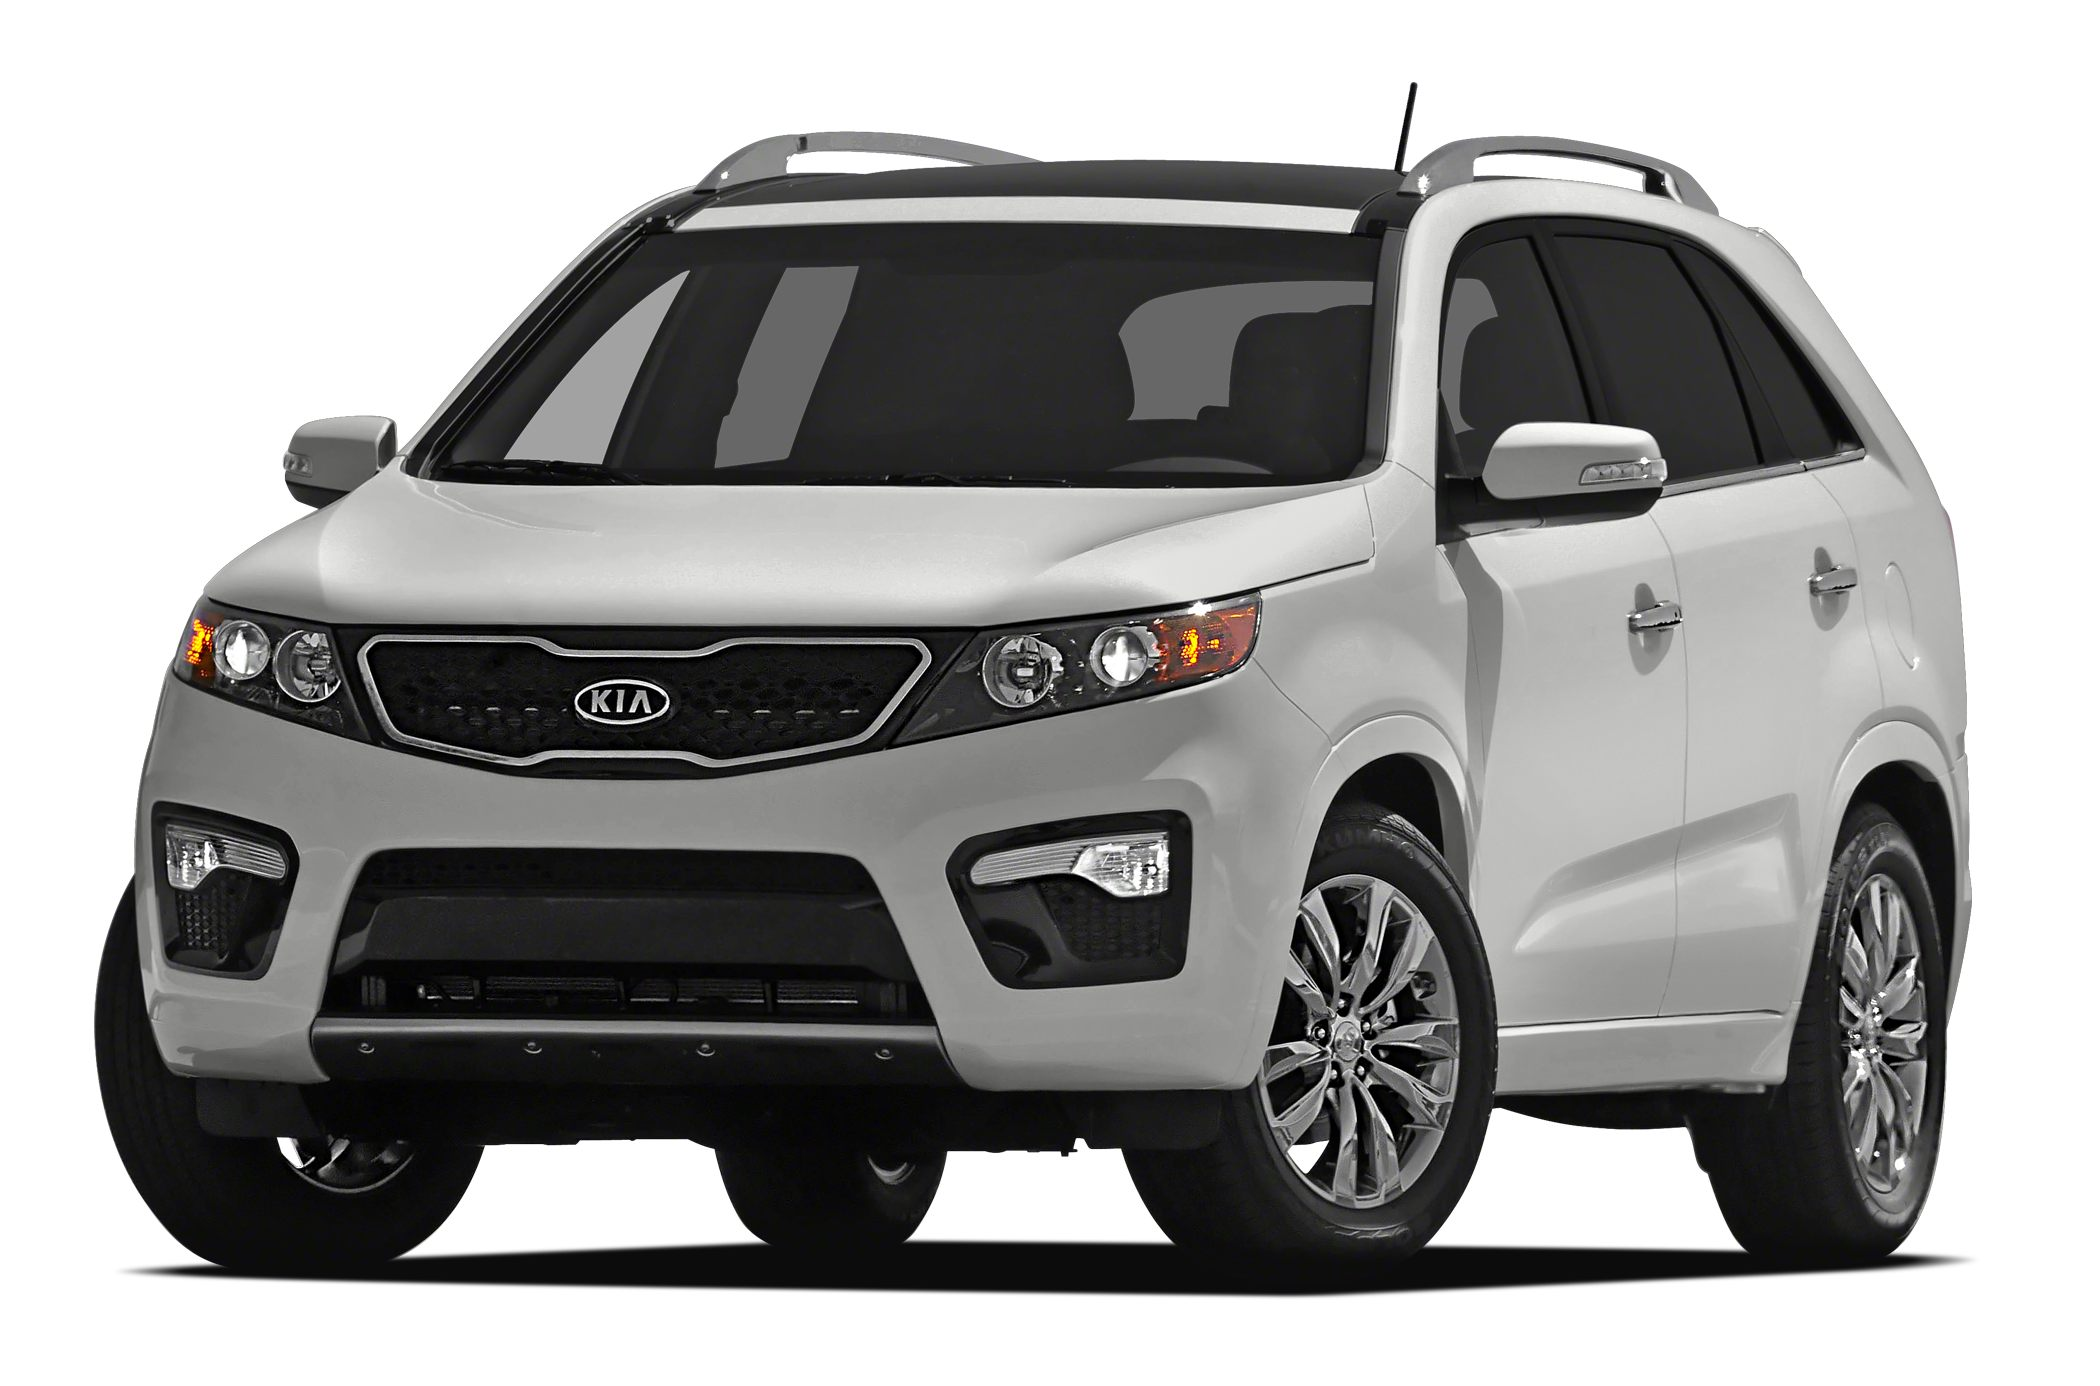 2012 Kia Sorento SX CARFAX 1-Owner ONLY 30868 Miles EPA 24 MPG Hwy18 MPG City 1100 below K